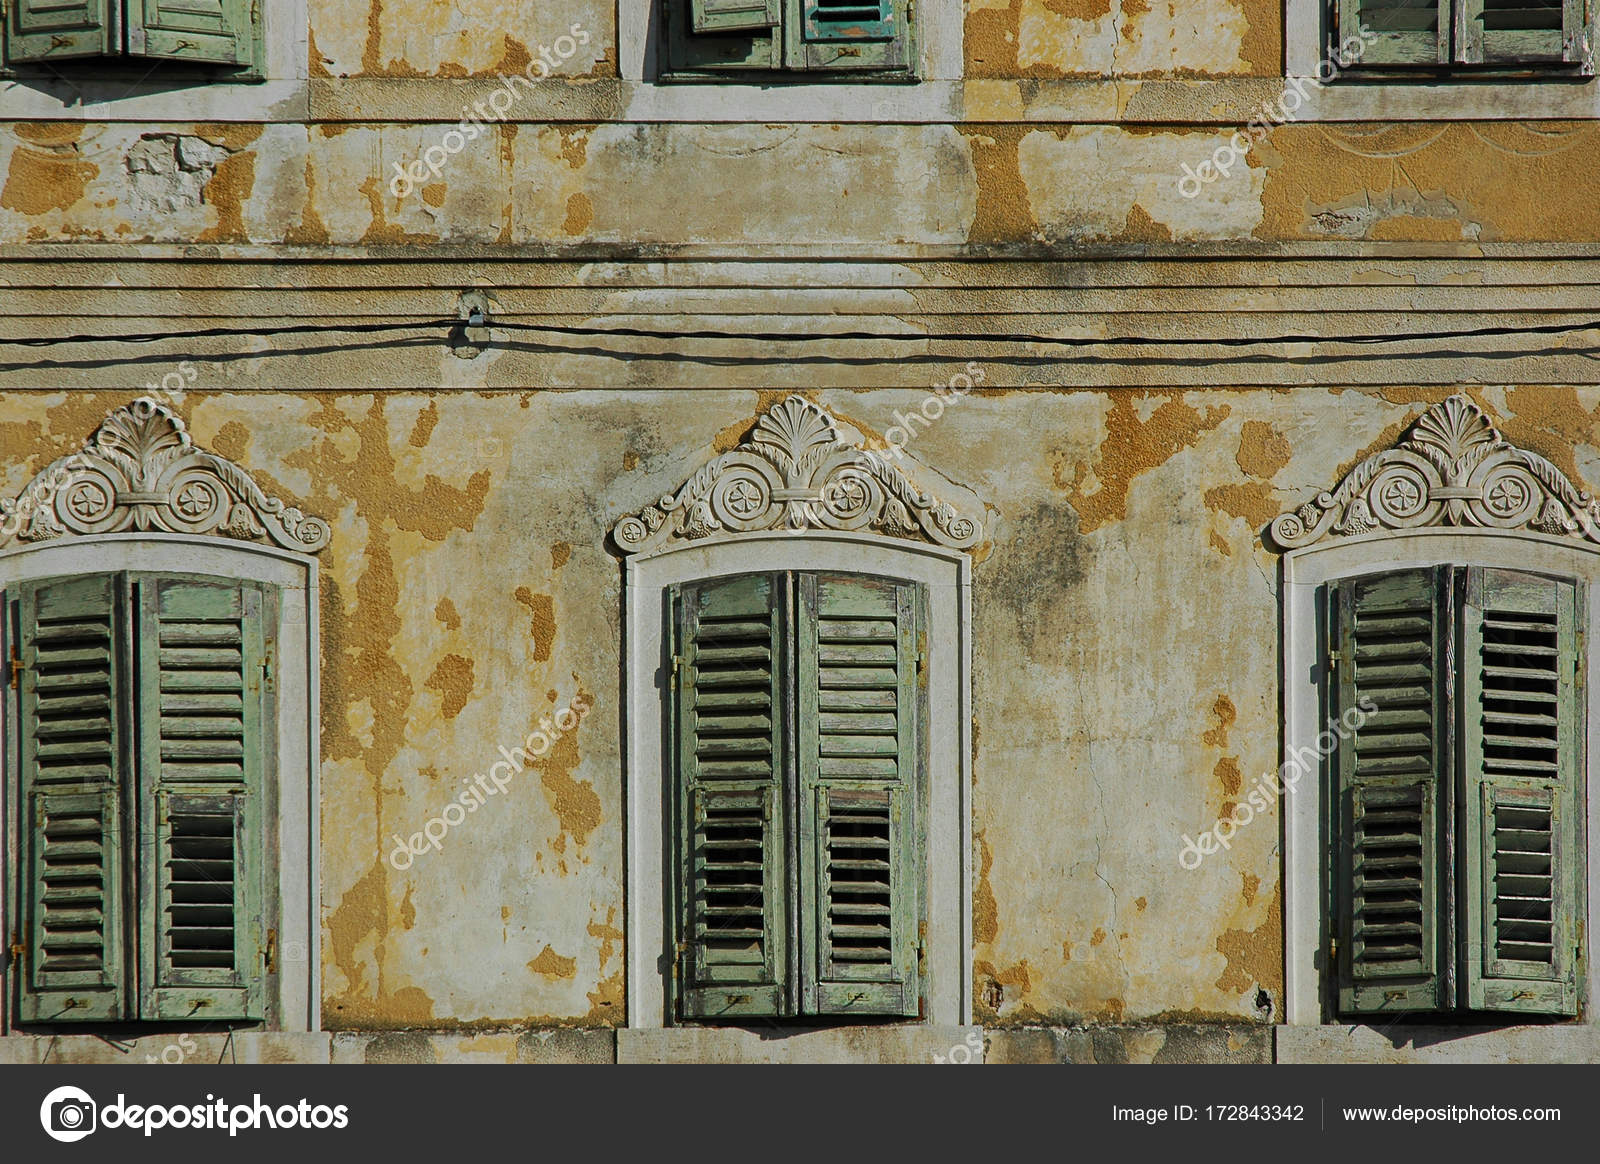 Weathered Window Shutters Of An Abandoned House With Ornate